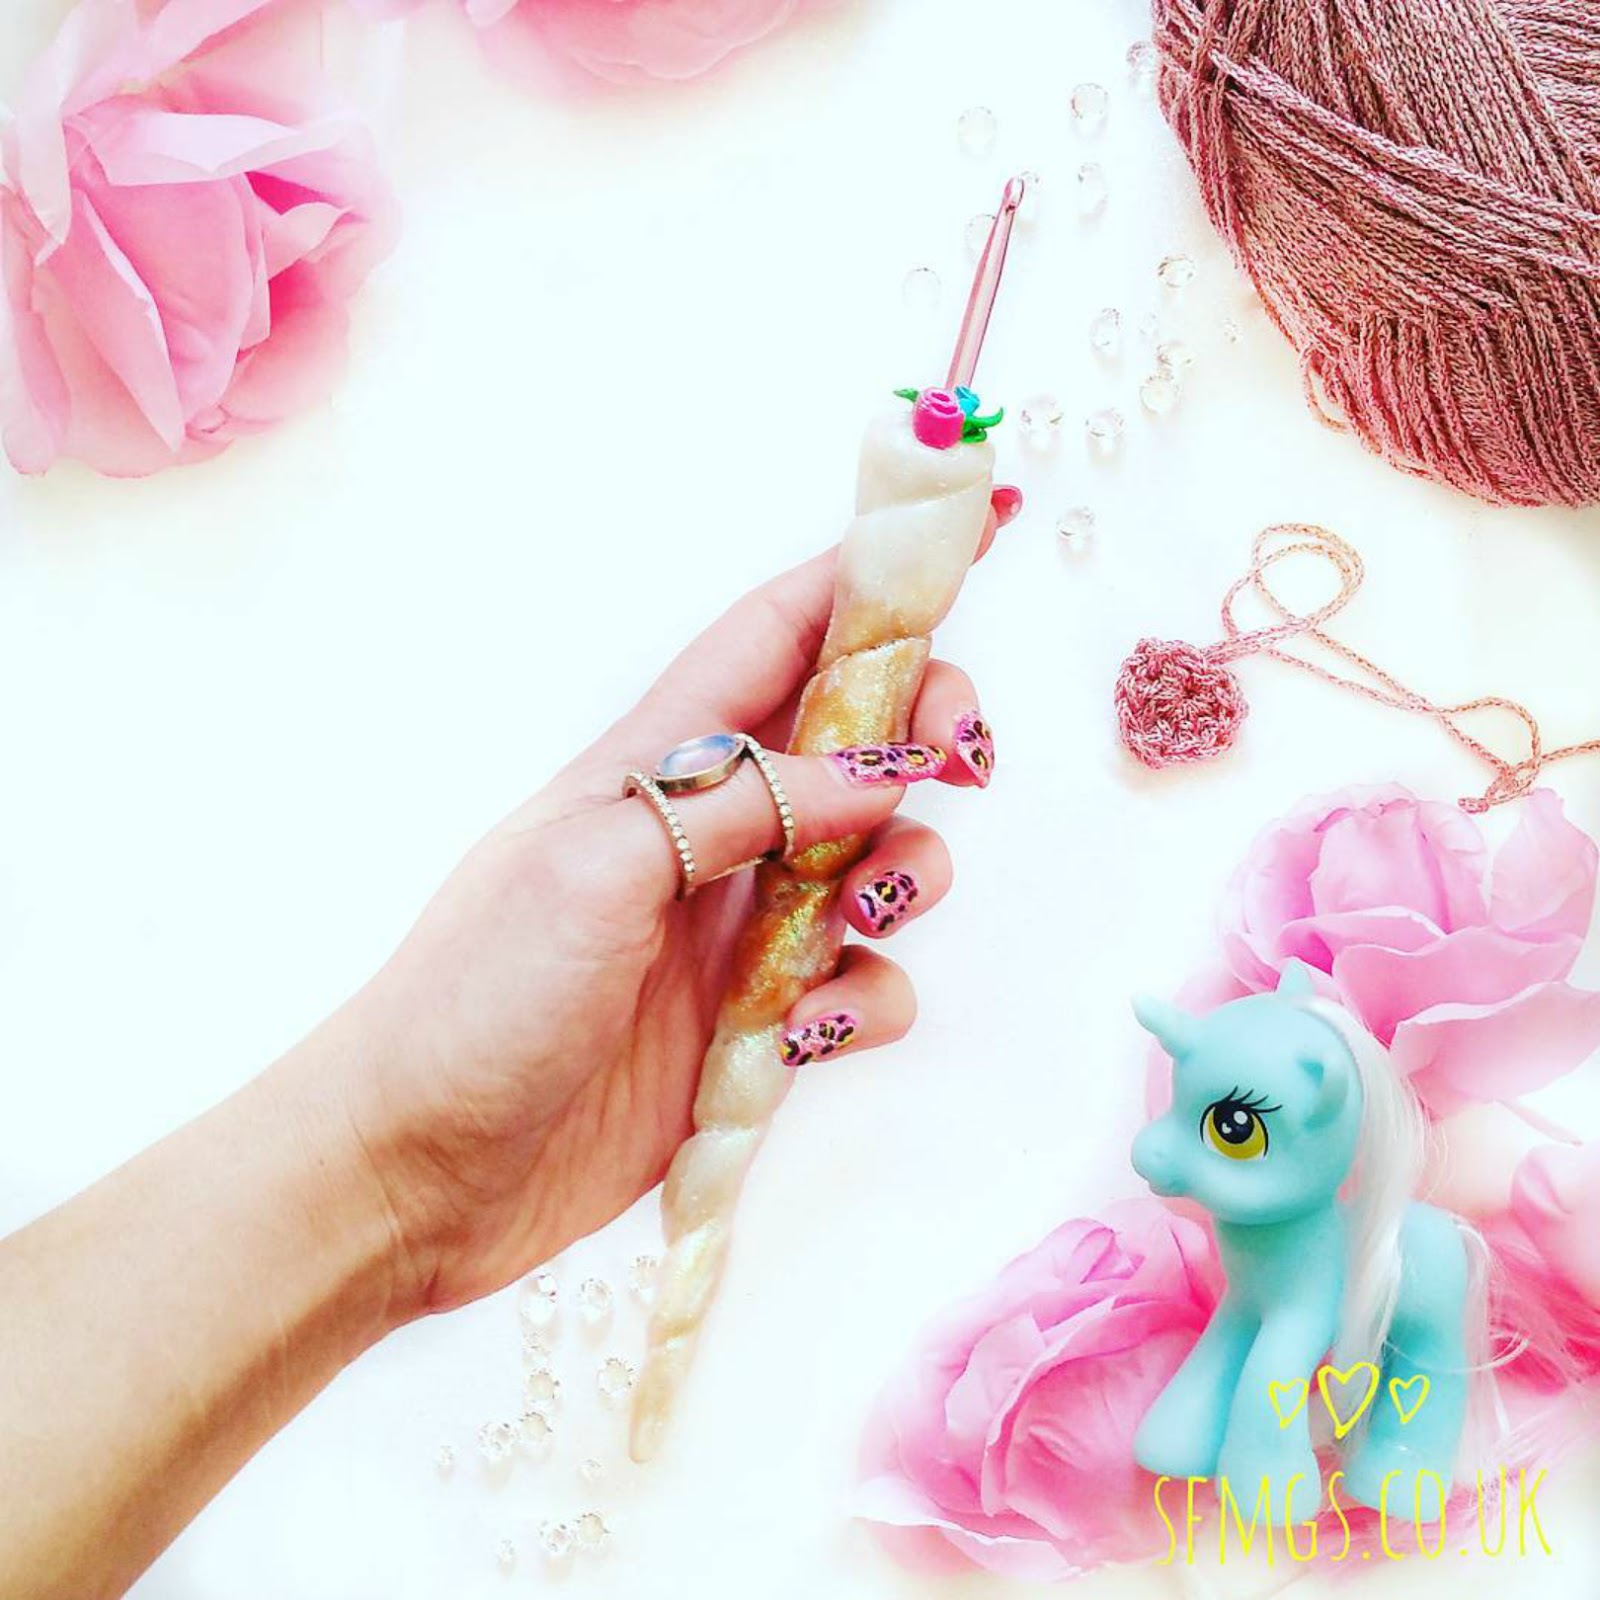 unicorn horn crochet hook gift crocheter crocheting gift shop buy glitter ergonomic polymer clay fimo